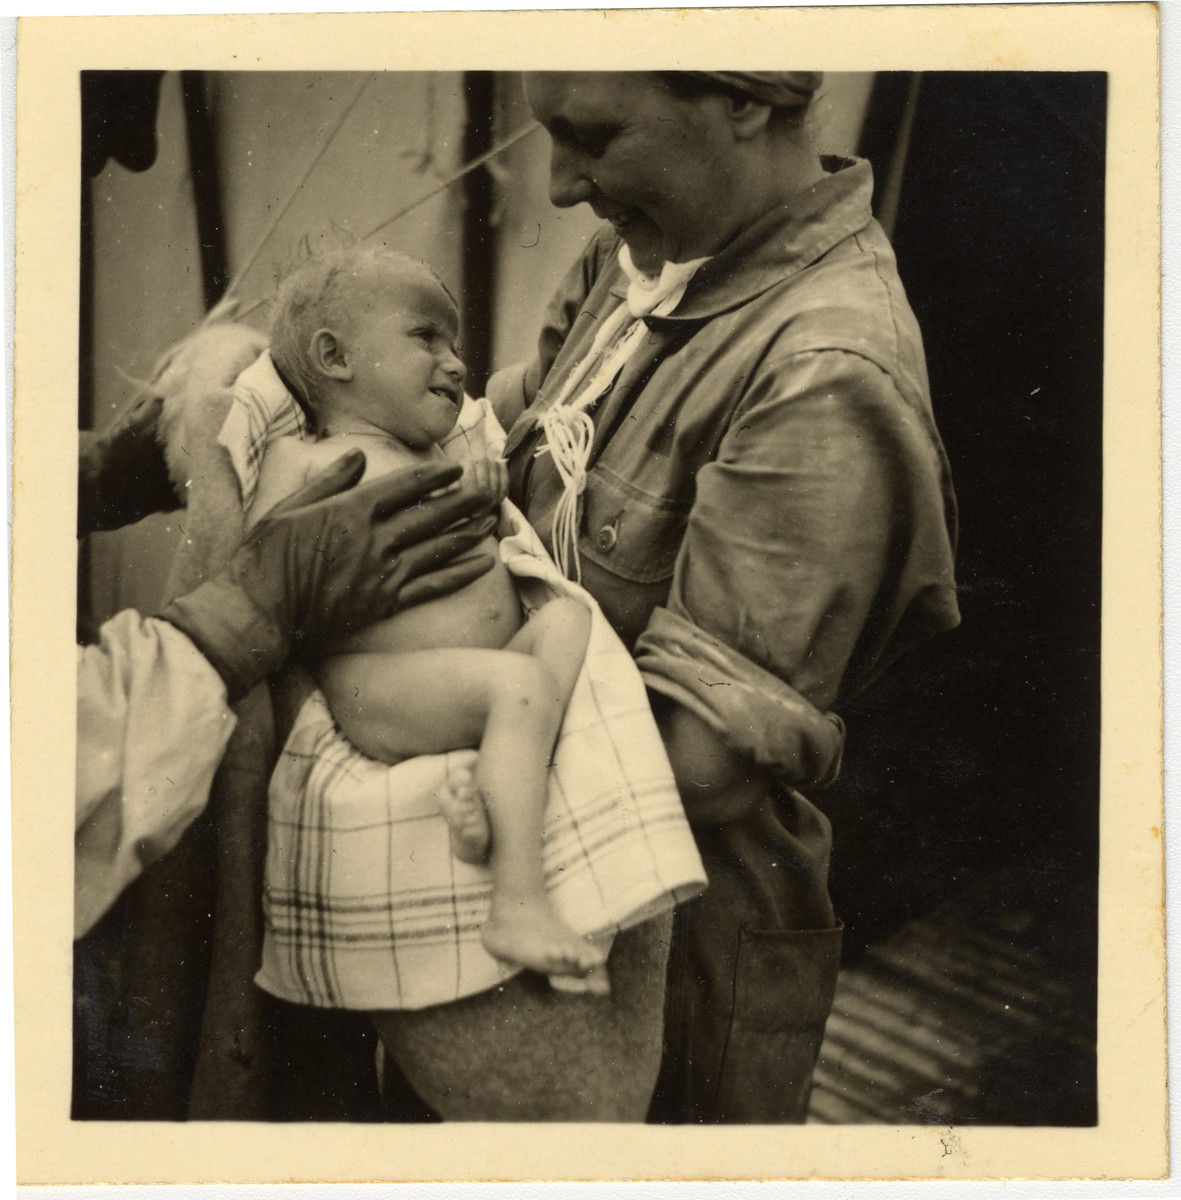 A woman holds a child suffering from cigarette burns while a doctor attends to him.